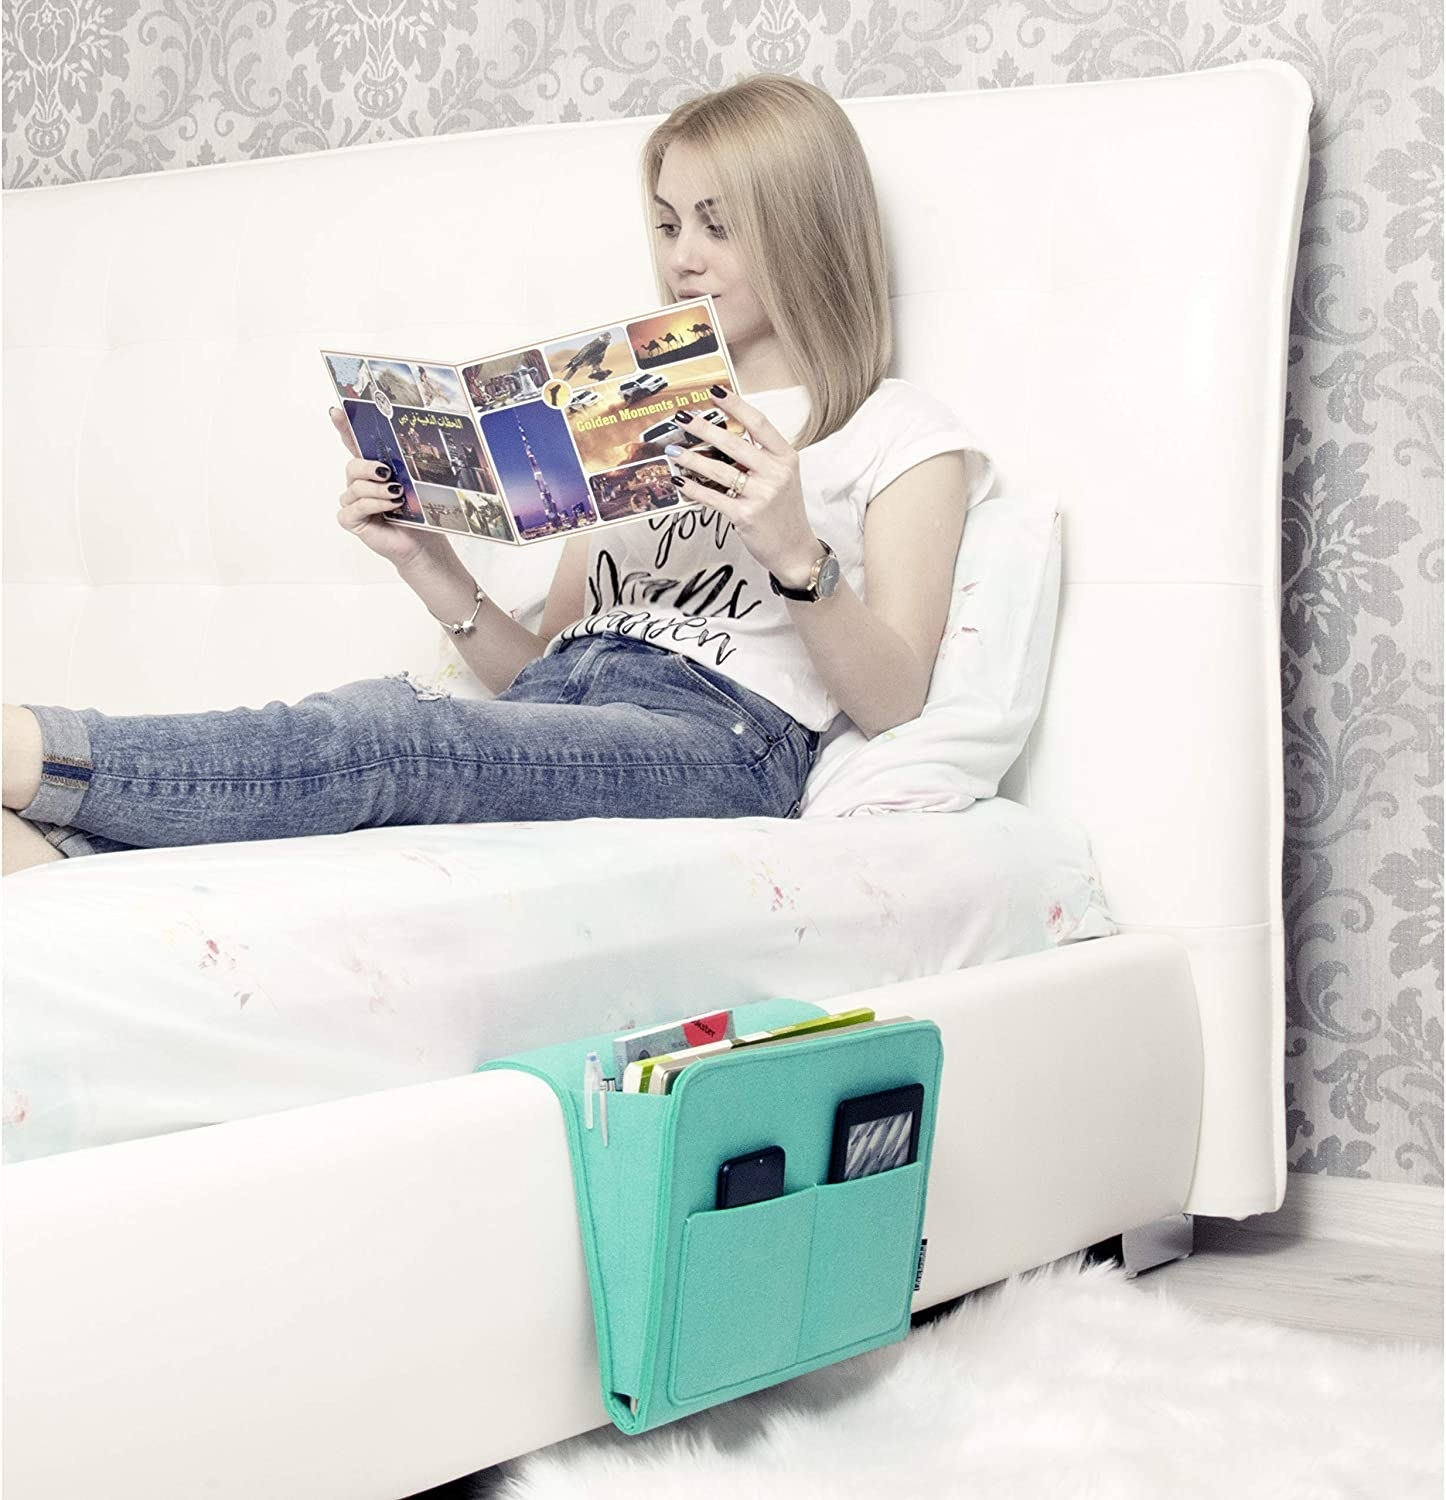 model lounges on bed with green bedside caddy on the side